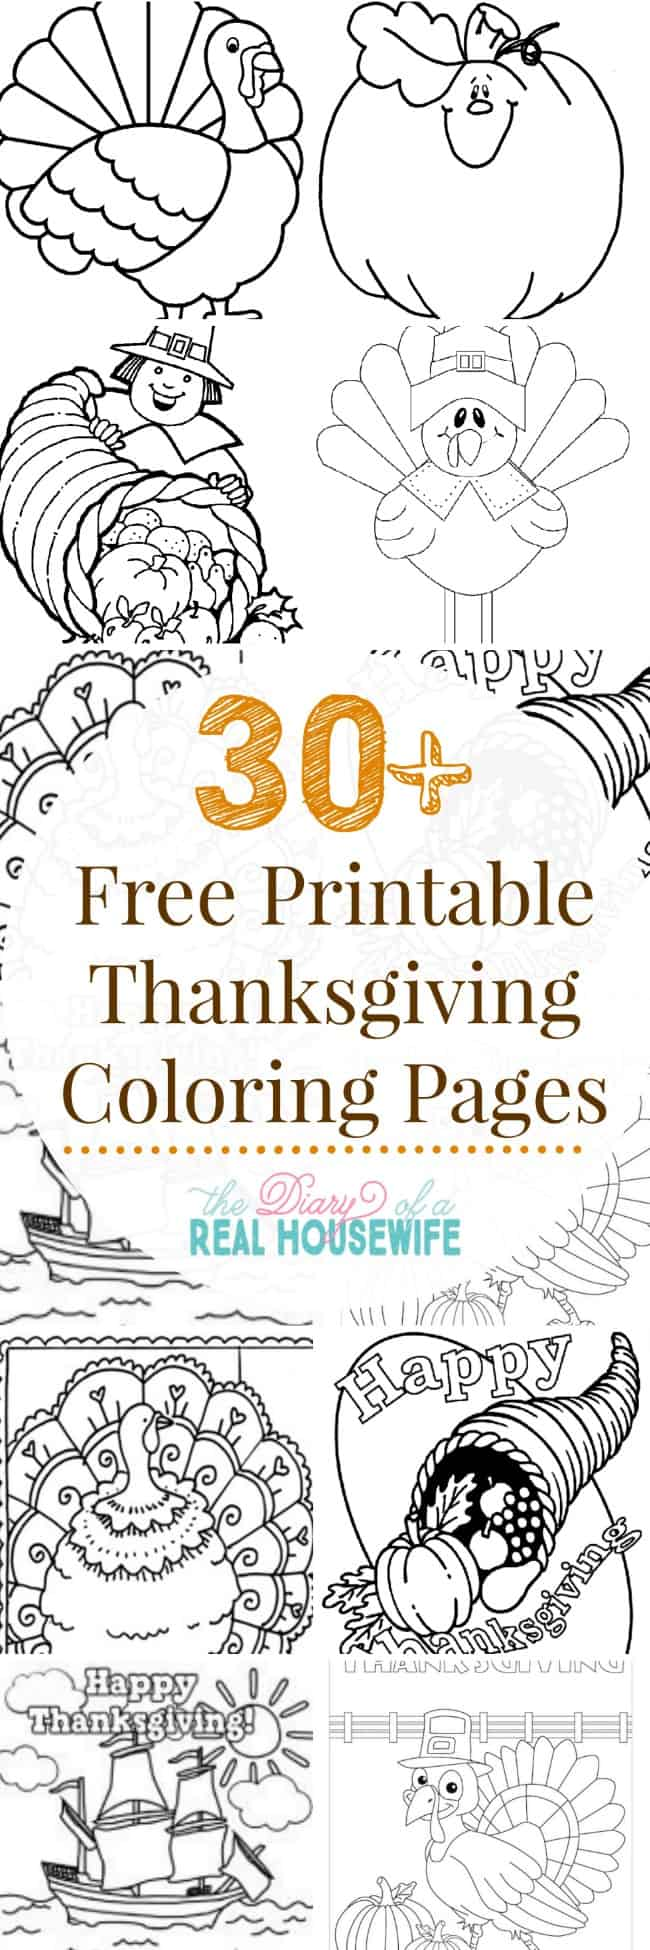 Thanksgiving coloring pages the diary of a real housewife for Fun thanksgiving coloring pages